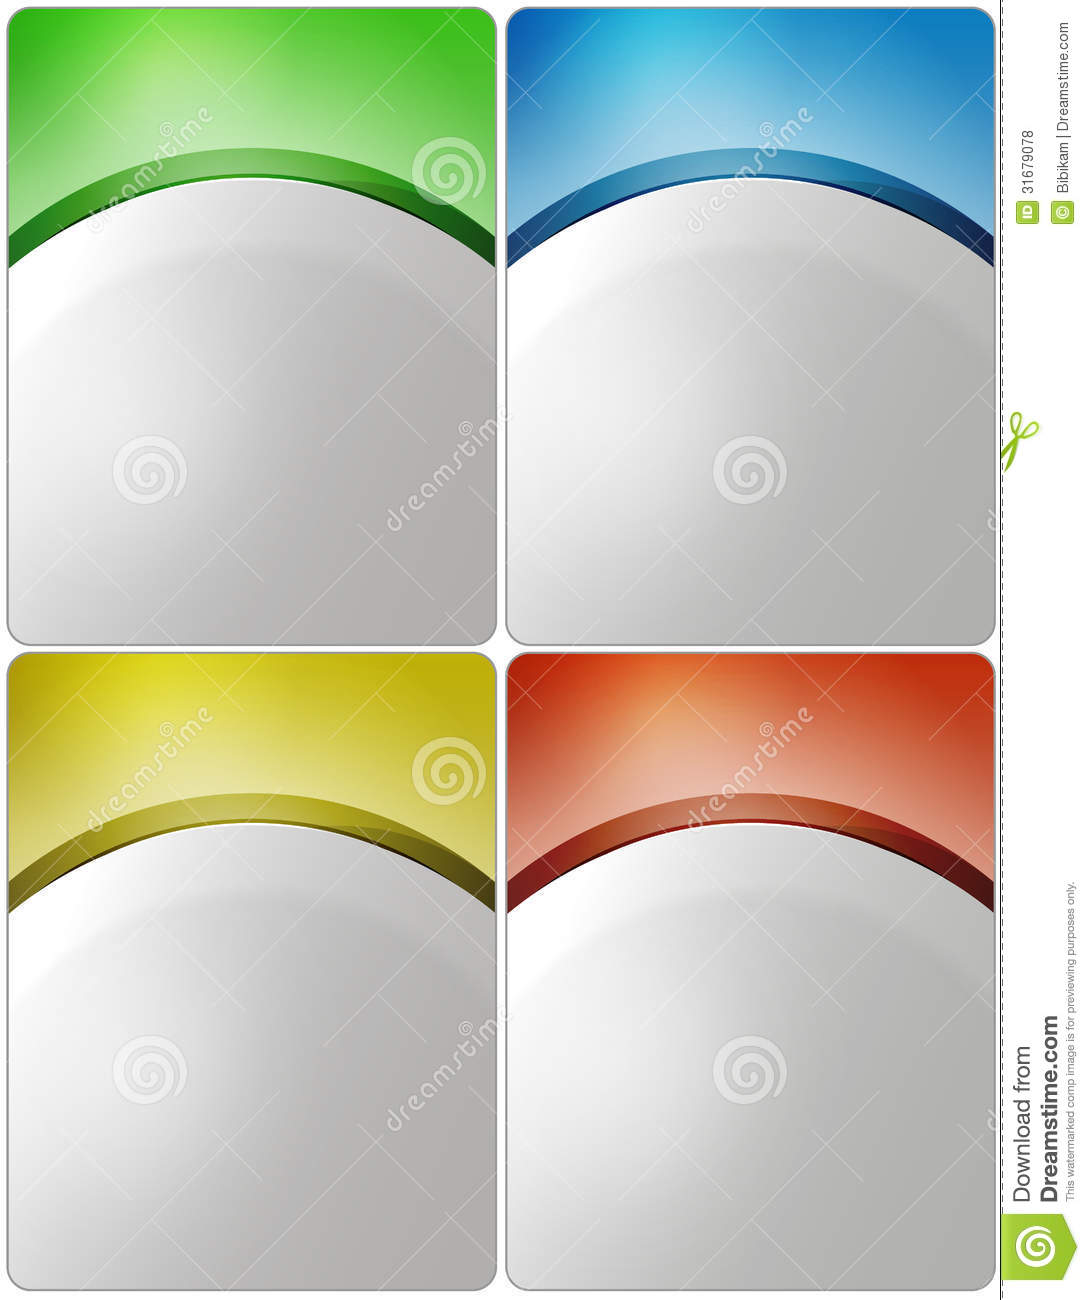 free downloadable poster templates - stylish presentation of business poster stock vector